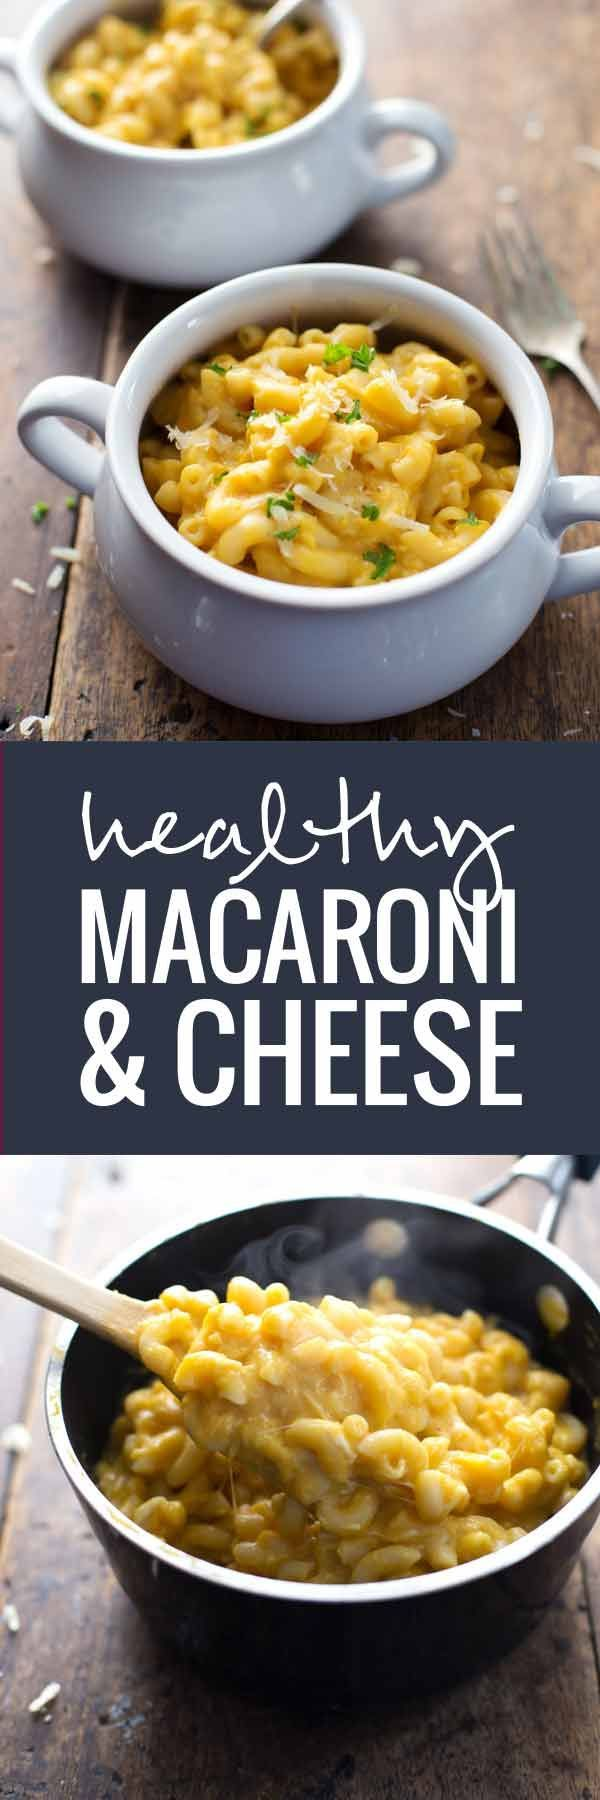 Healthy Mac and Cheese - A classic dish made with butternut squash for a healthy twist! Full of cheese and flavor | pinchofyum.com